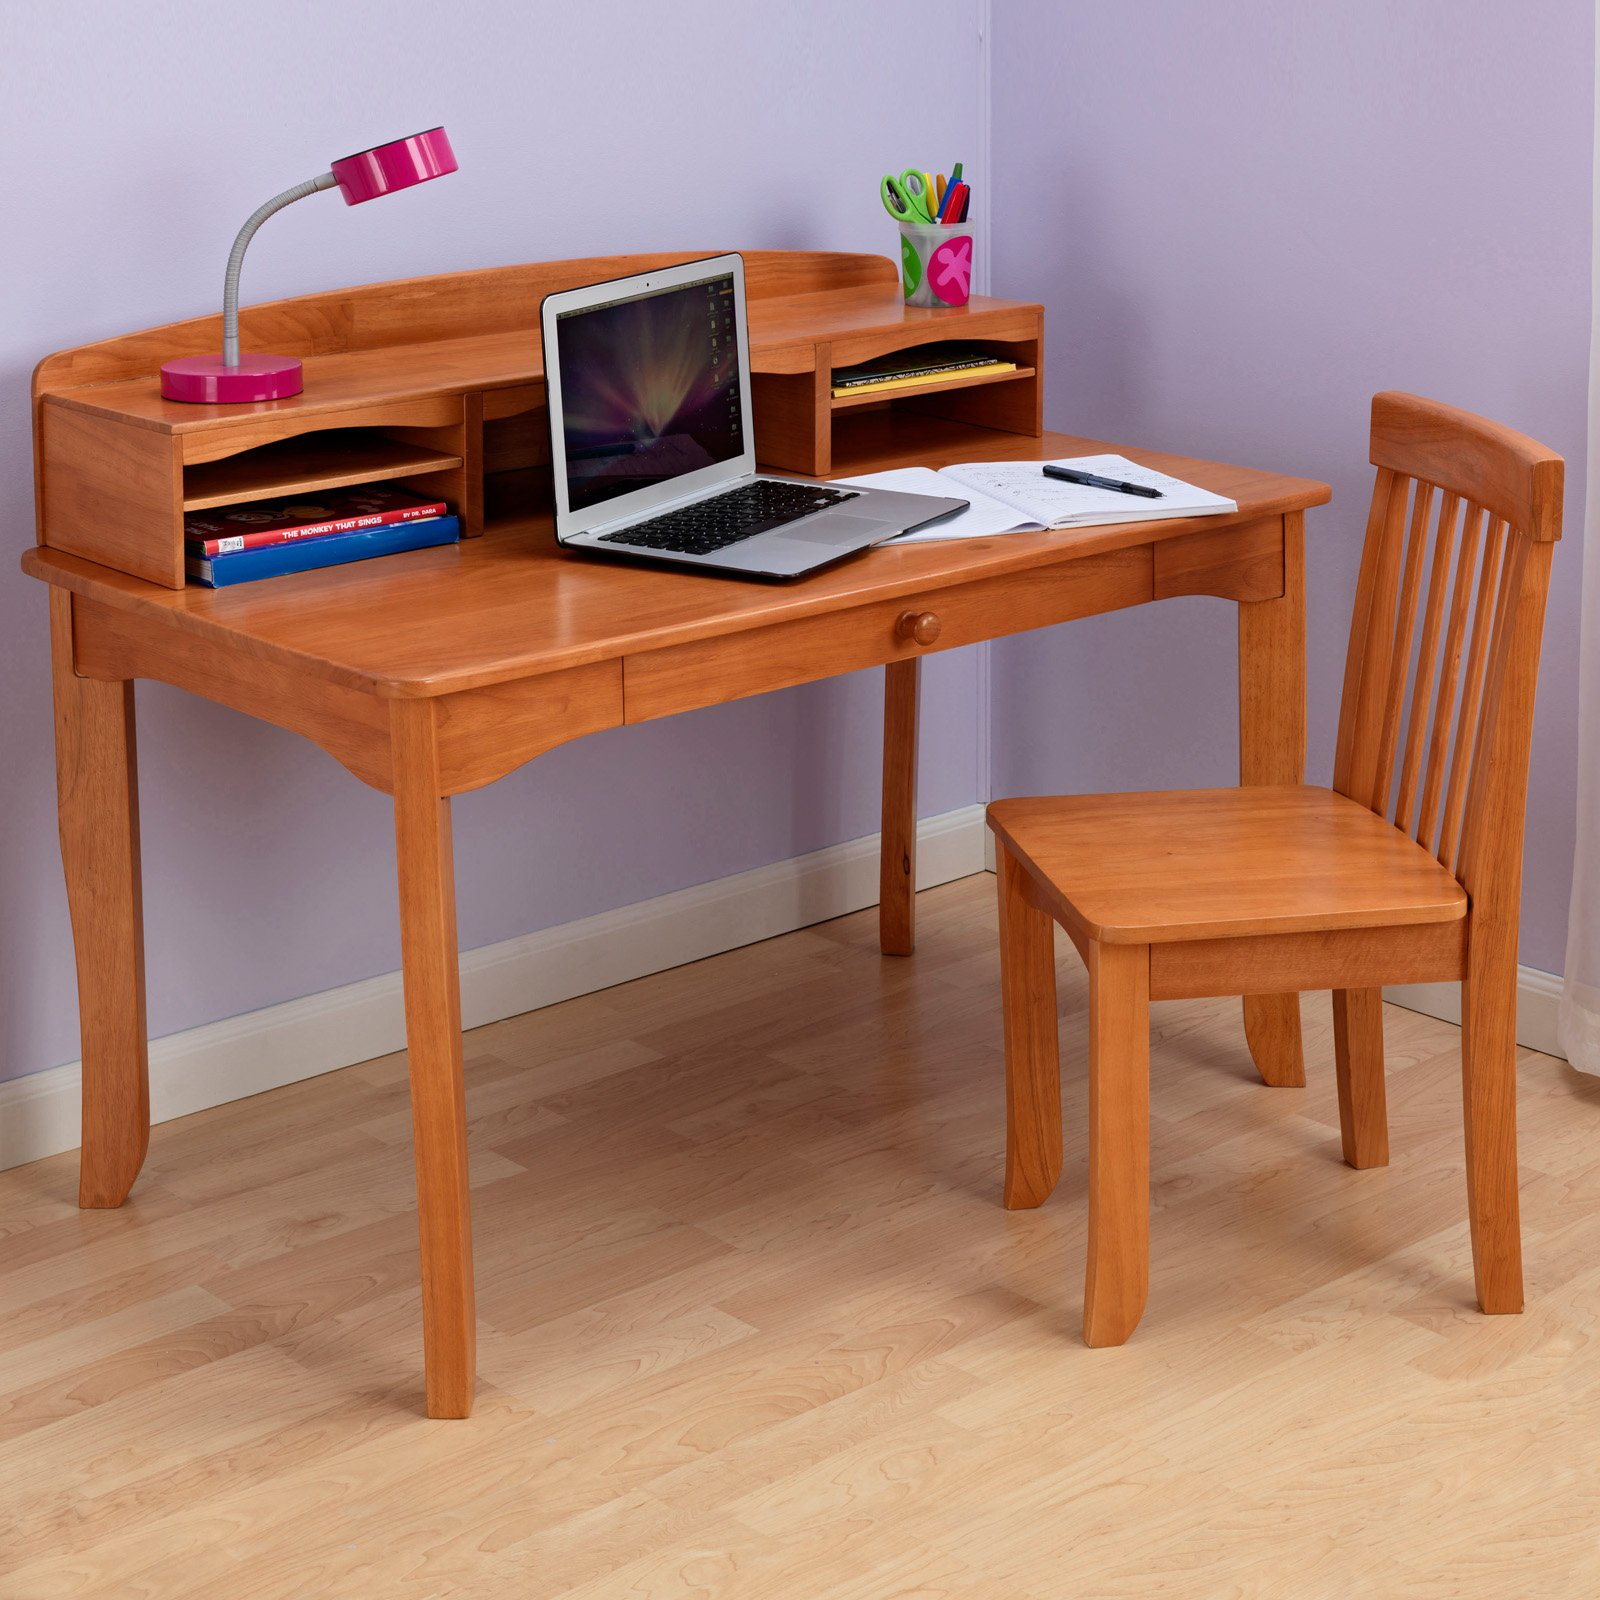 Childrens Desk And Chair Kid Desk With Chair Design Homesfeed